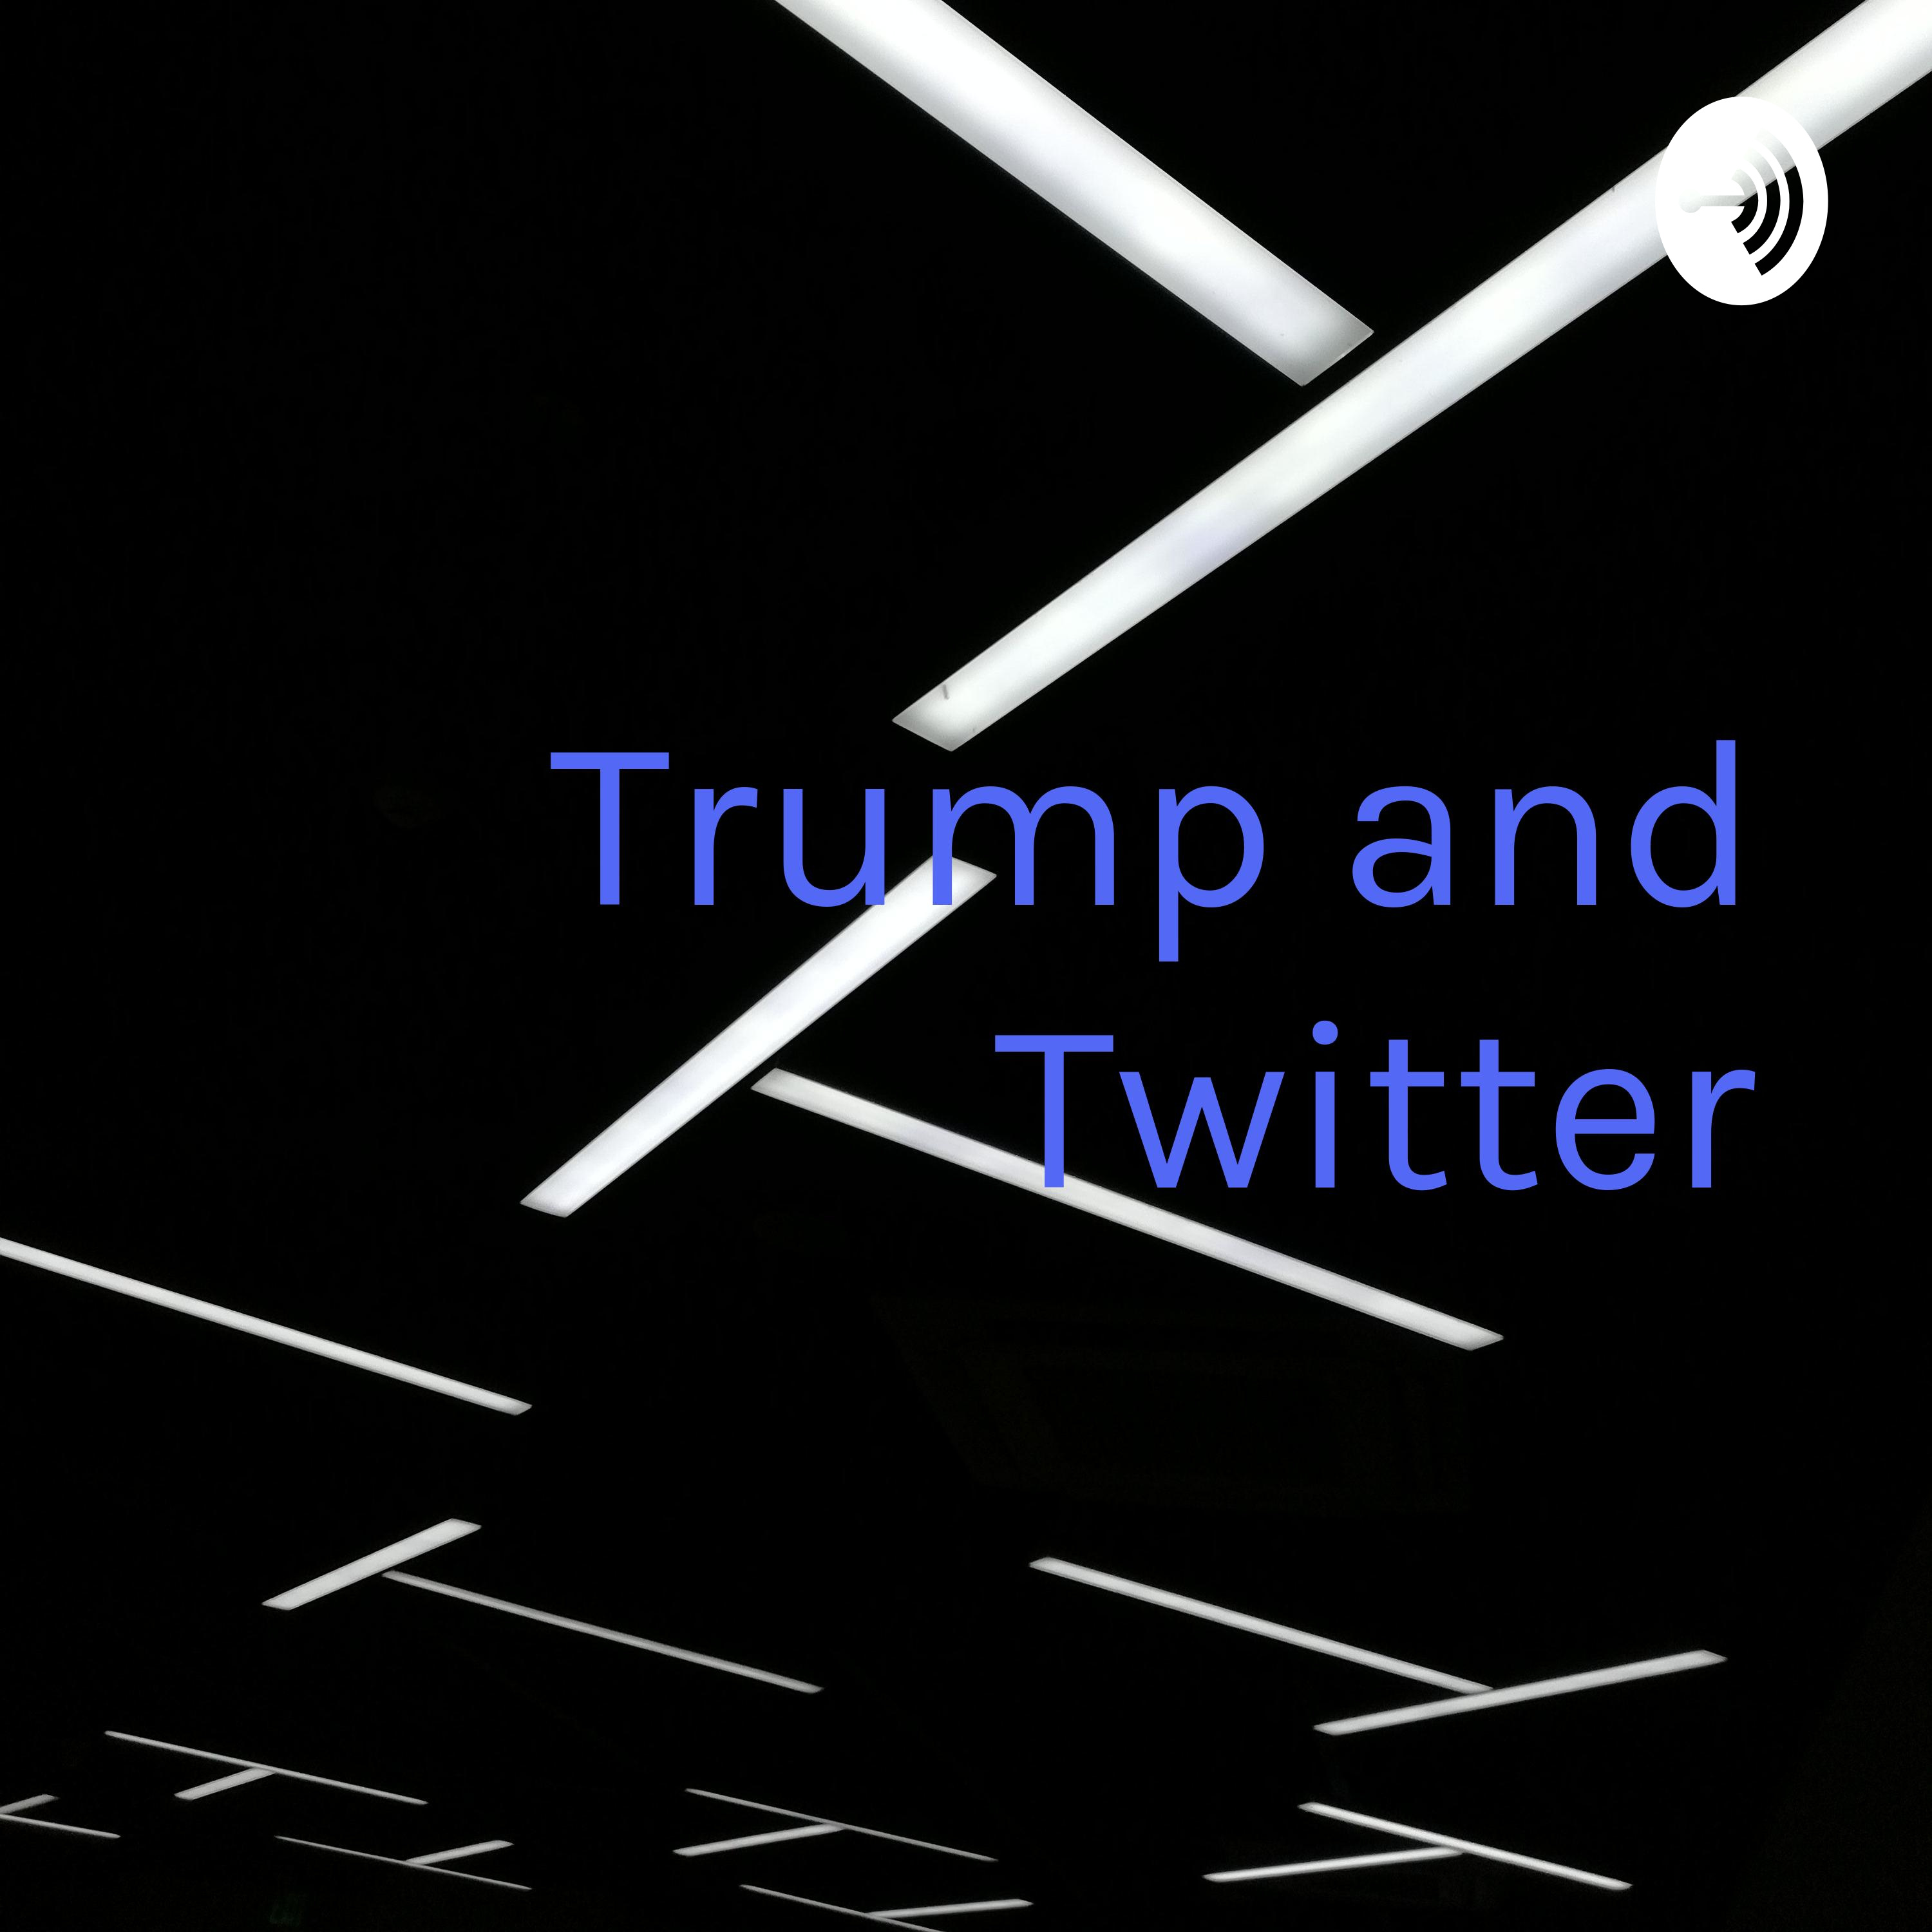 Trump and Twitter: The Toxic Duo | Listen via Stitcher for